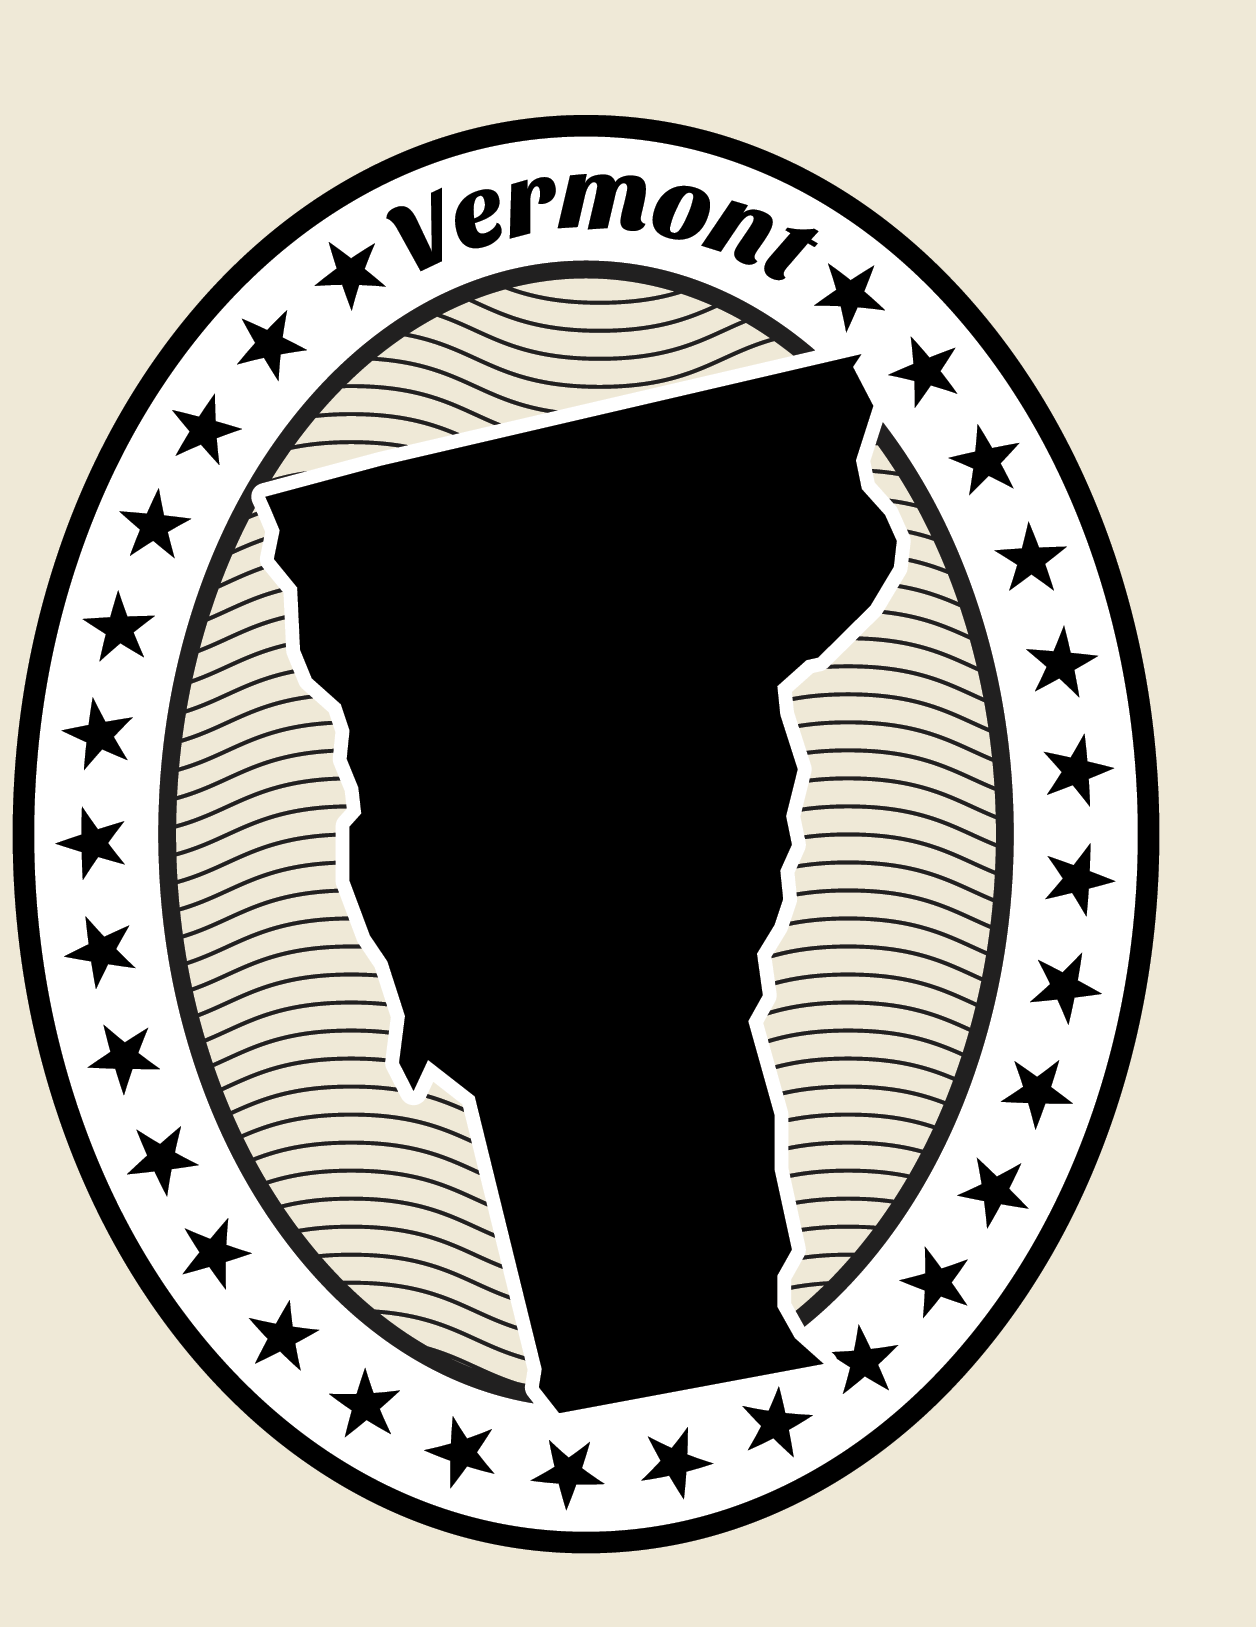 Vermont Grunge Map Black and White Stamp Collection.